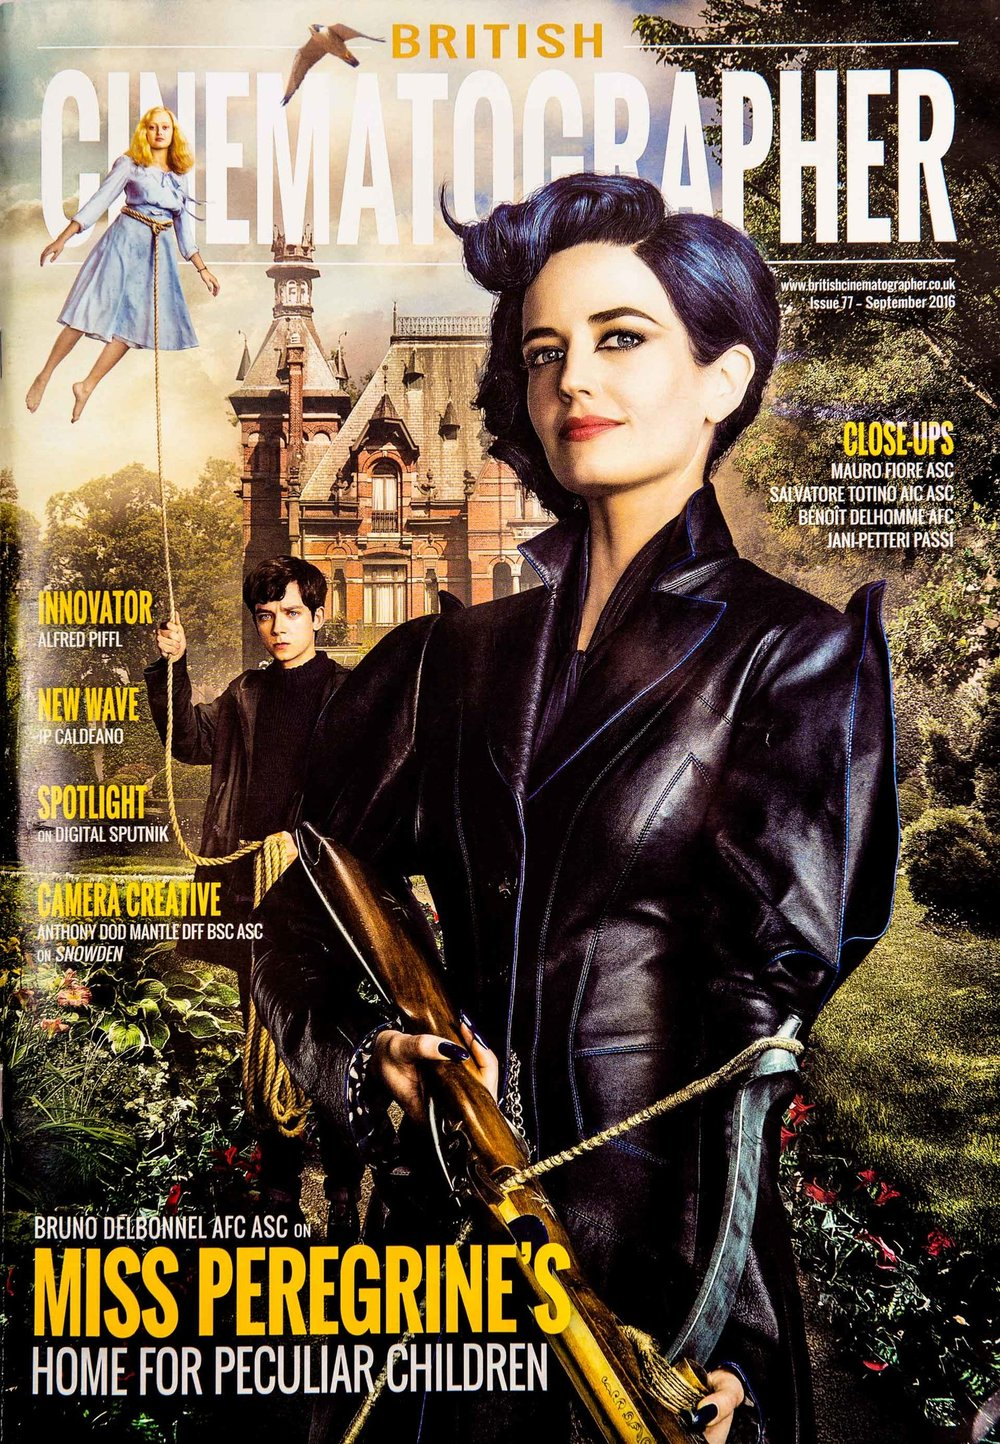 British Cinematographer Magazine Cinefade press cover